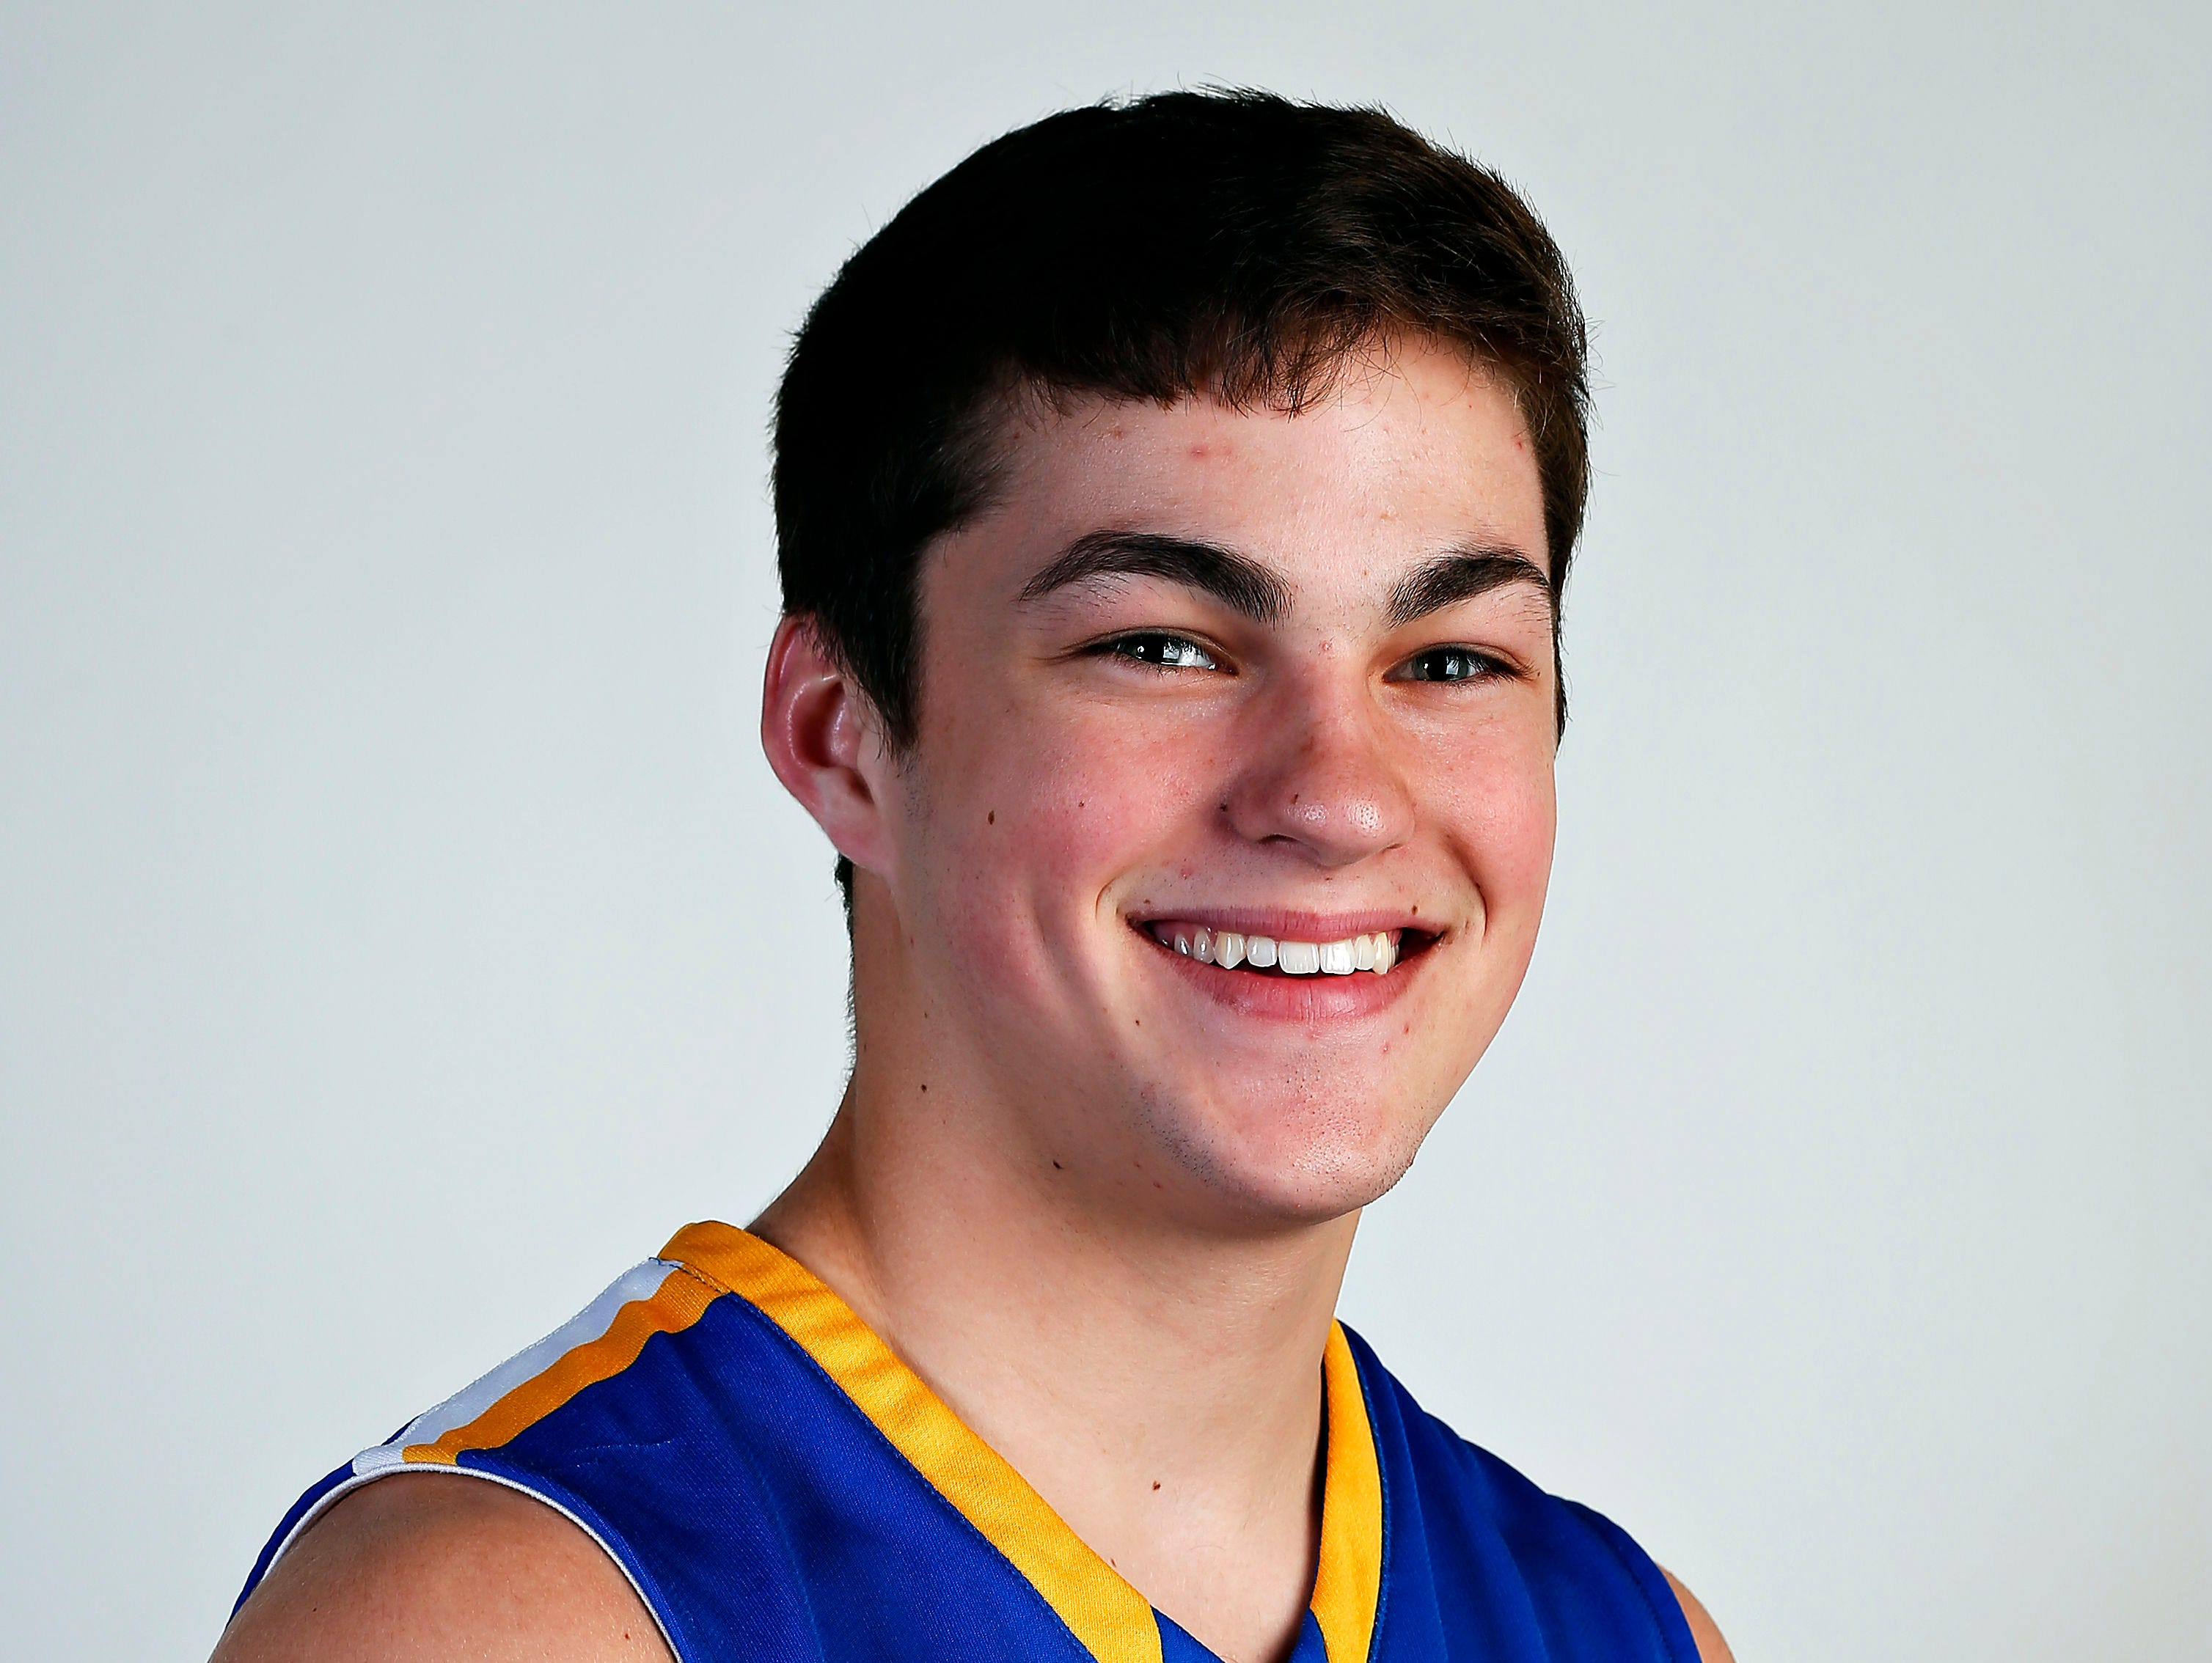 All Ozarks basketball team member Zach Chastain of Crane at the Springfield News-Leader portrait studio in Springfield, Mo. on April 29, 2015.